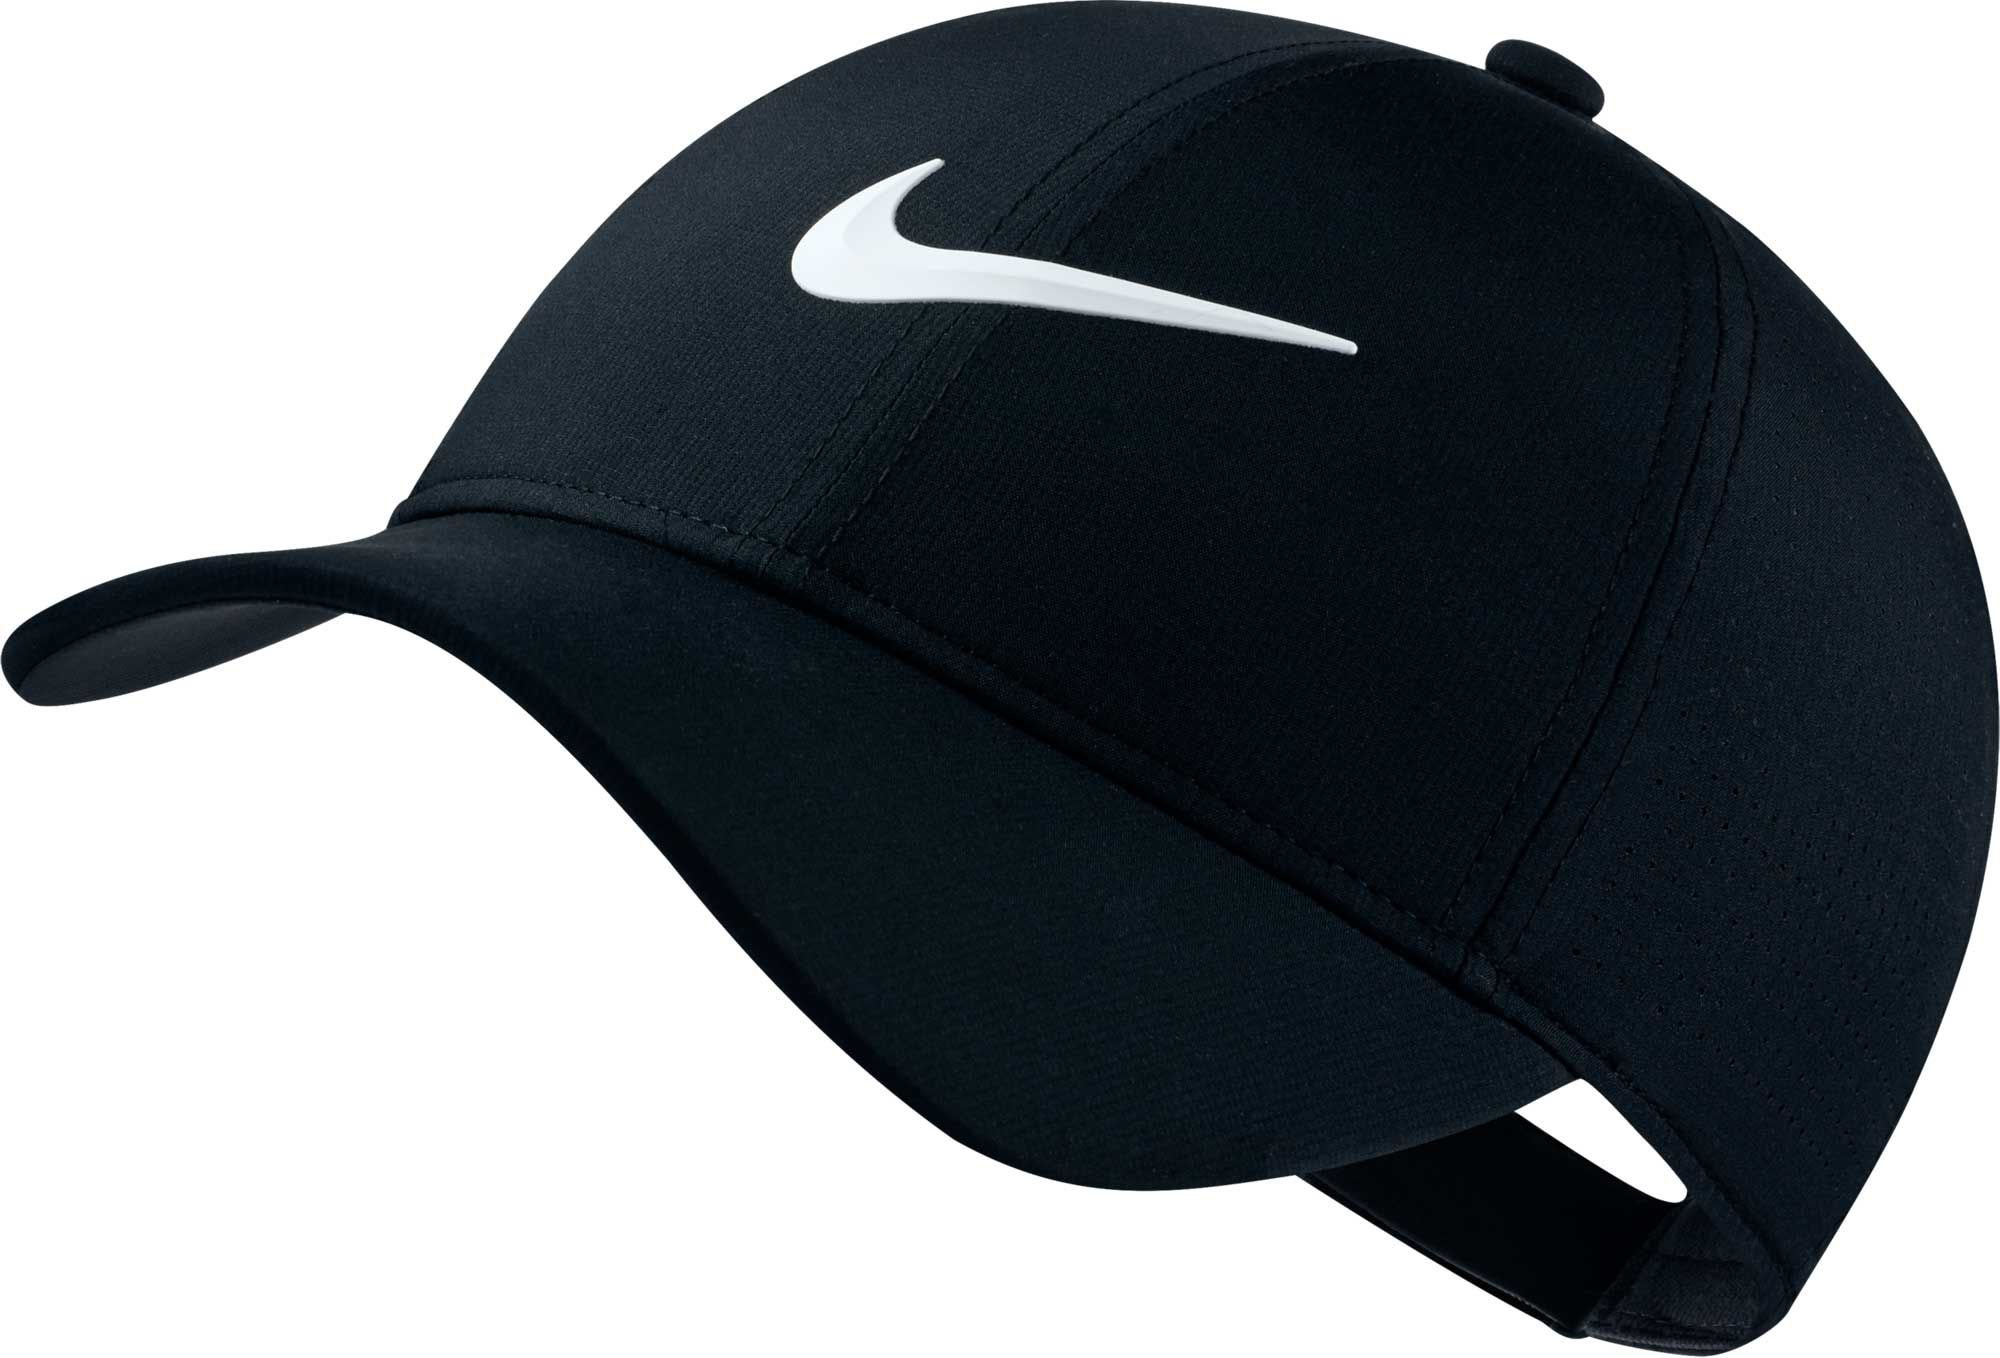 55d97a634 Nike Women's AeroBill Legacy91 Perforated Golf Hat